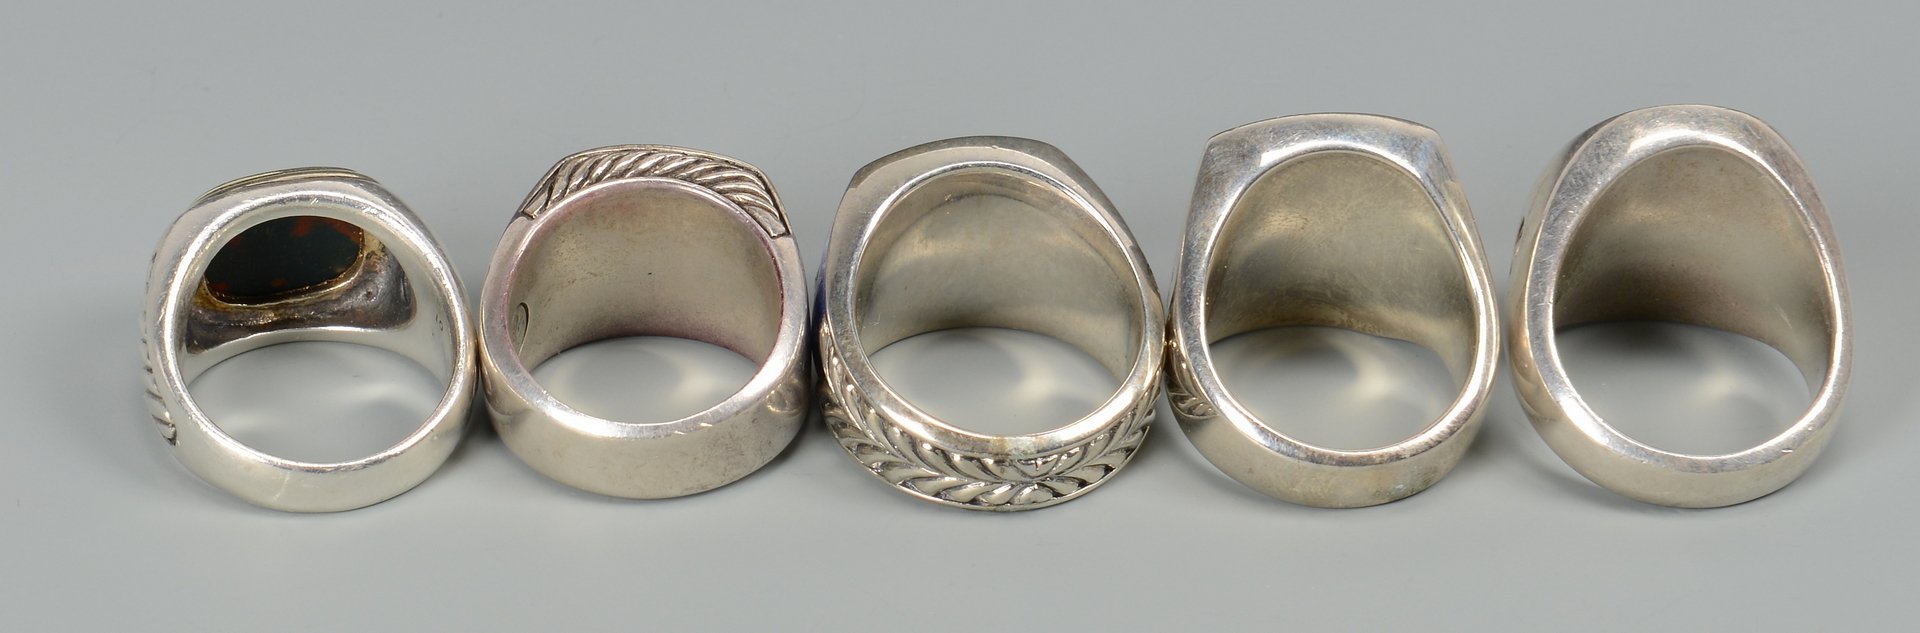 Lot 579: 5 David Yurman Signet Rings w/ stones